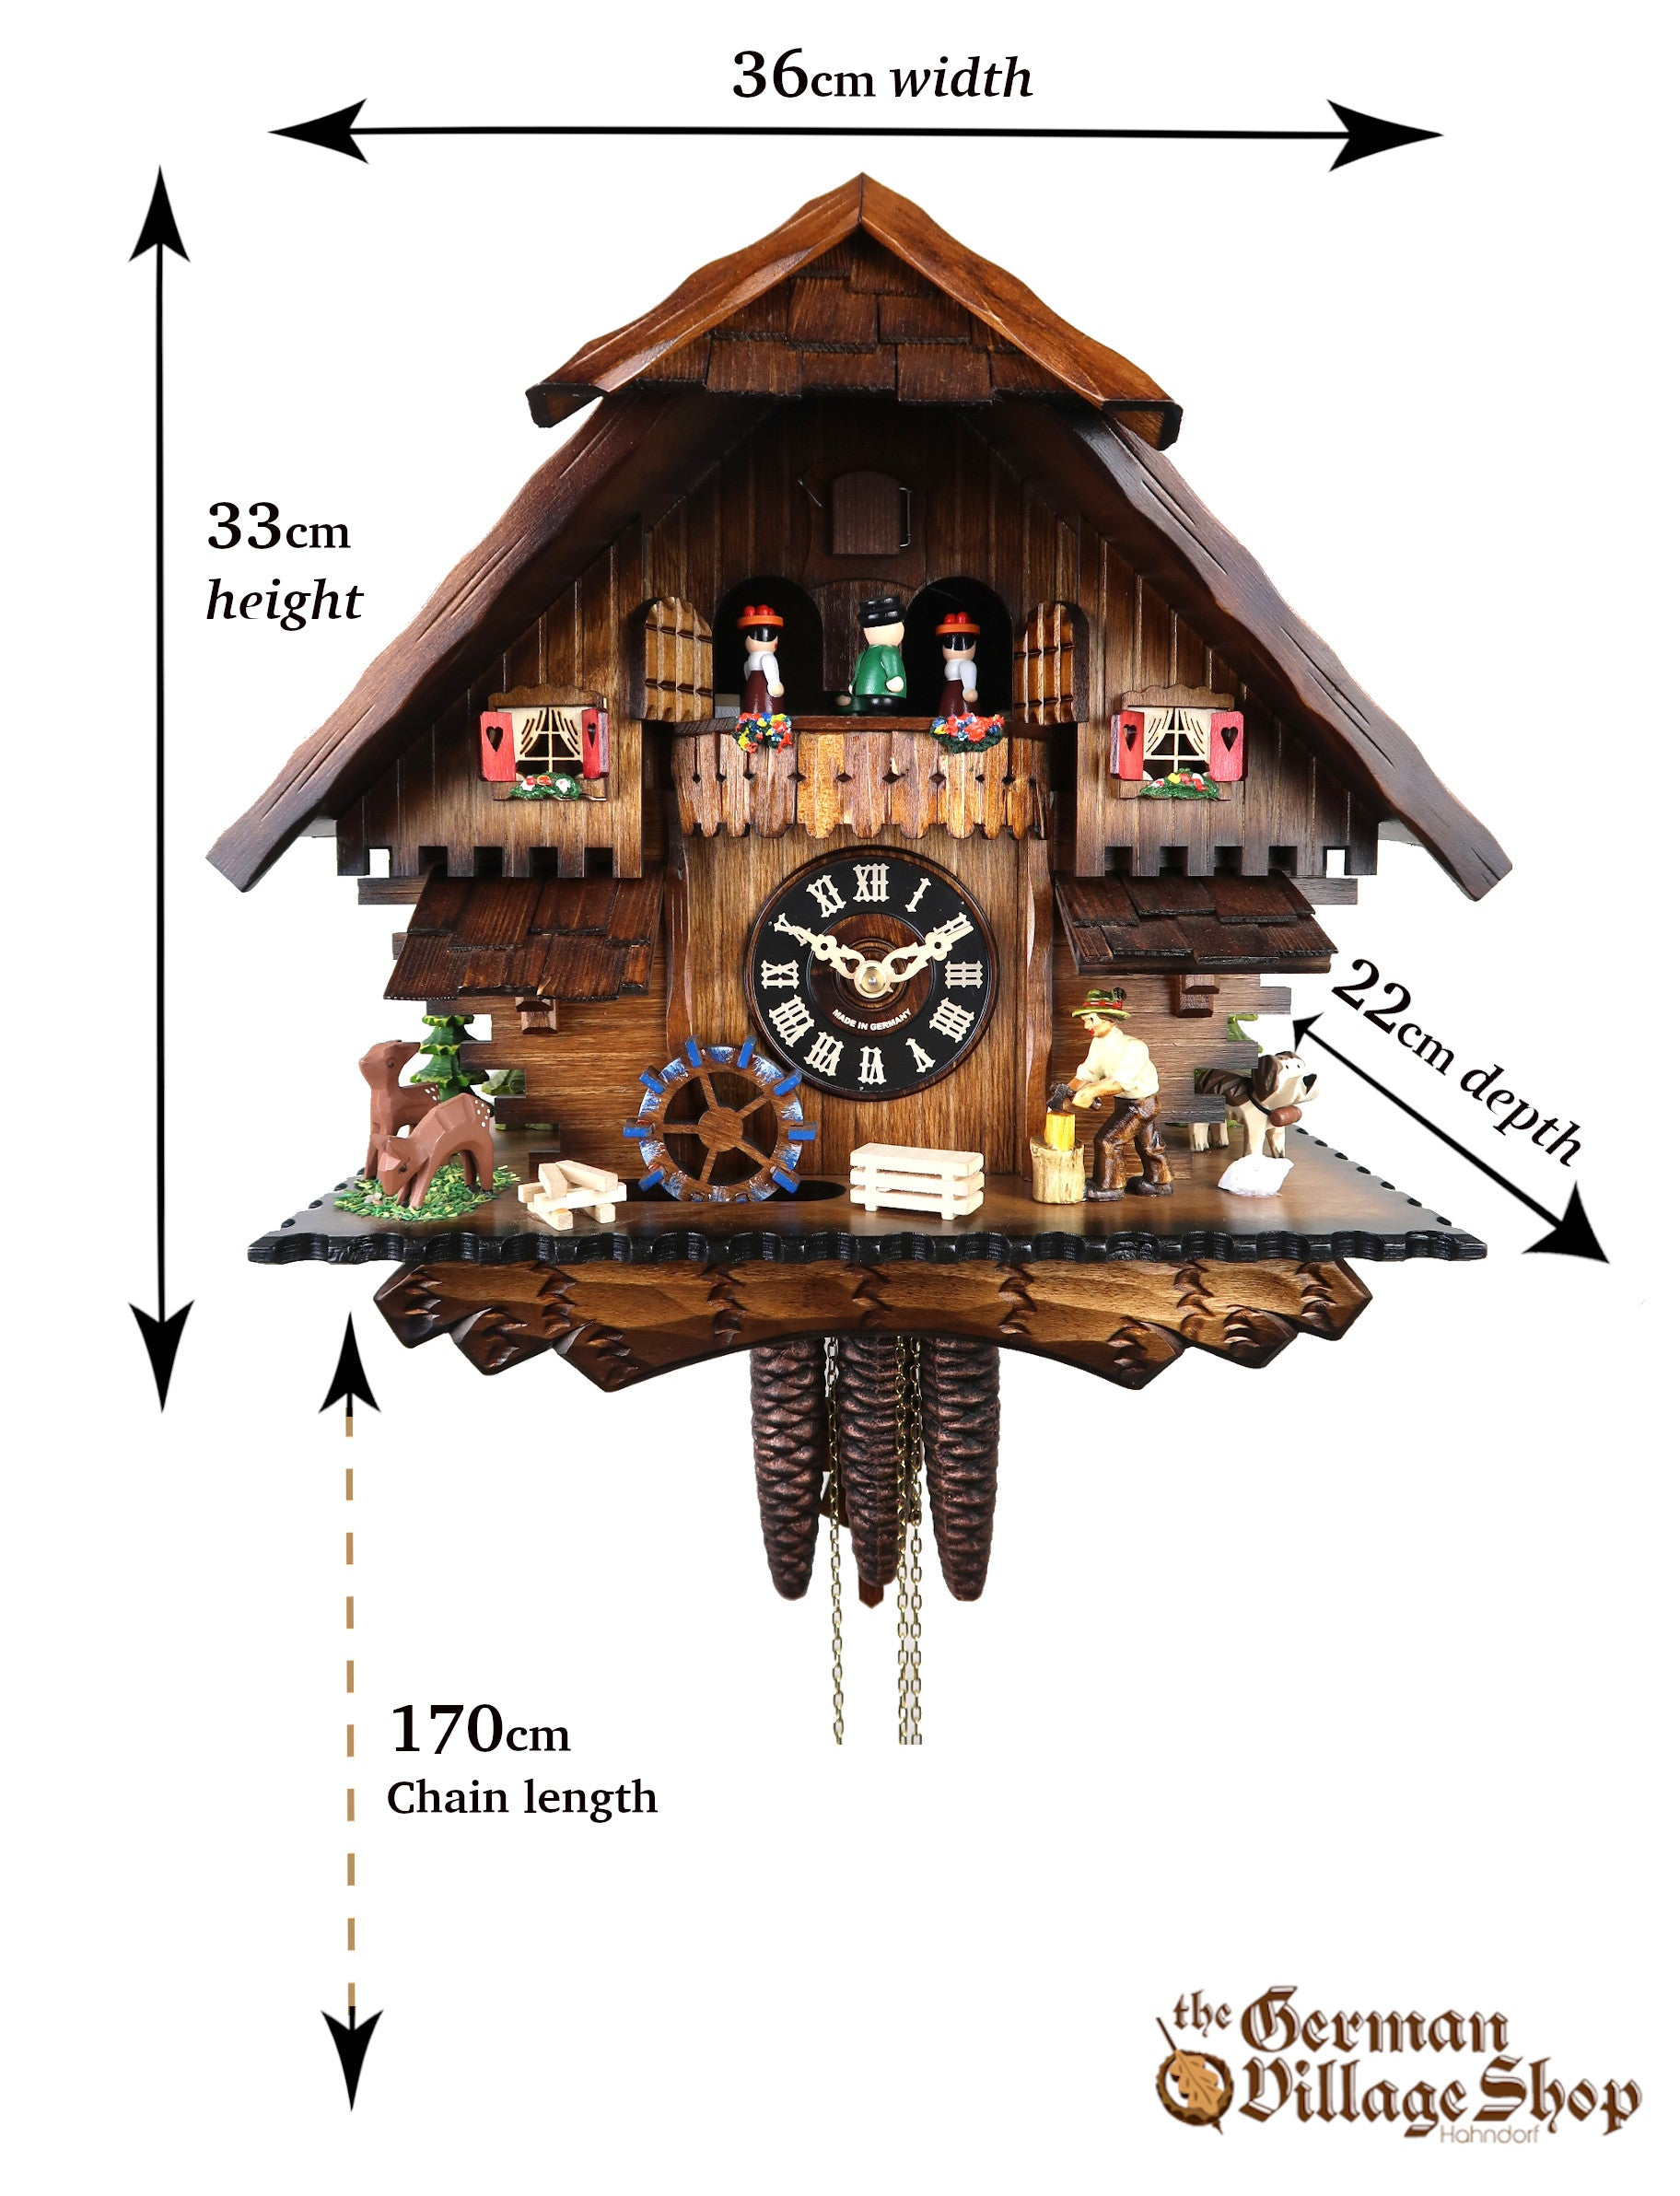 Size of German Cuckoo Clock imported and for sale in Austalia